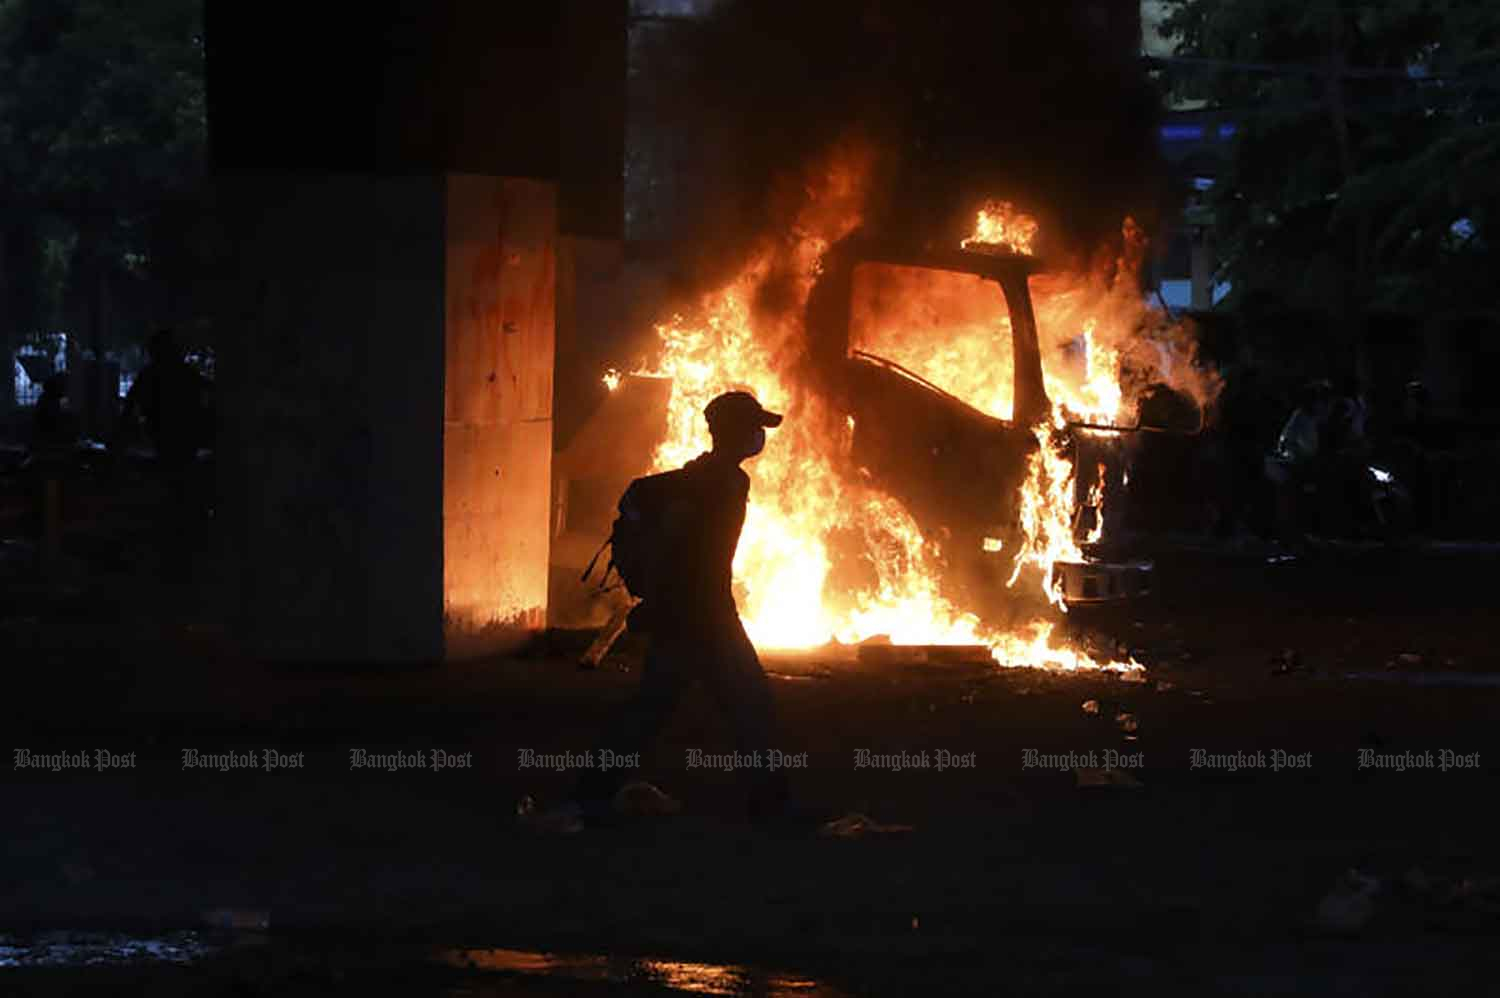 A protester walks past a burning police truck near the Victory Monument in Bangkok on Wednesday evening. (Photo: Arnun Chonmahatrakool)